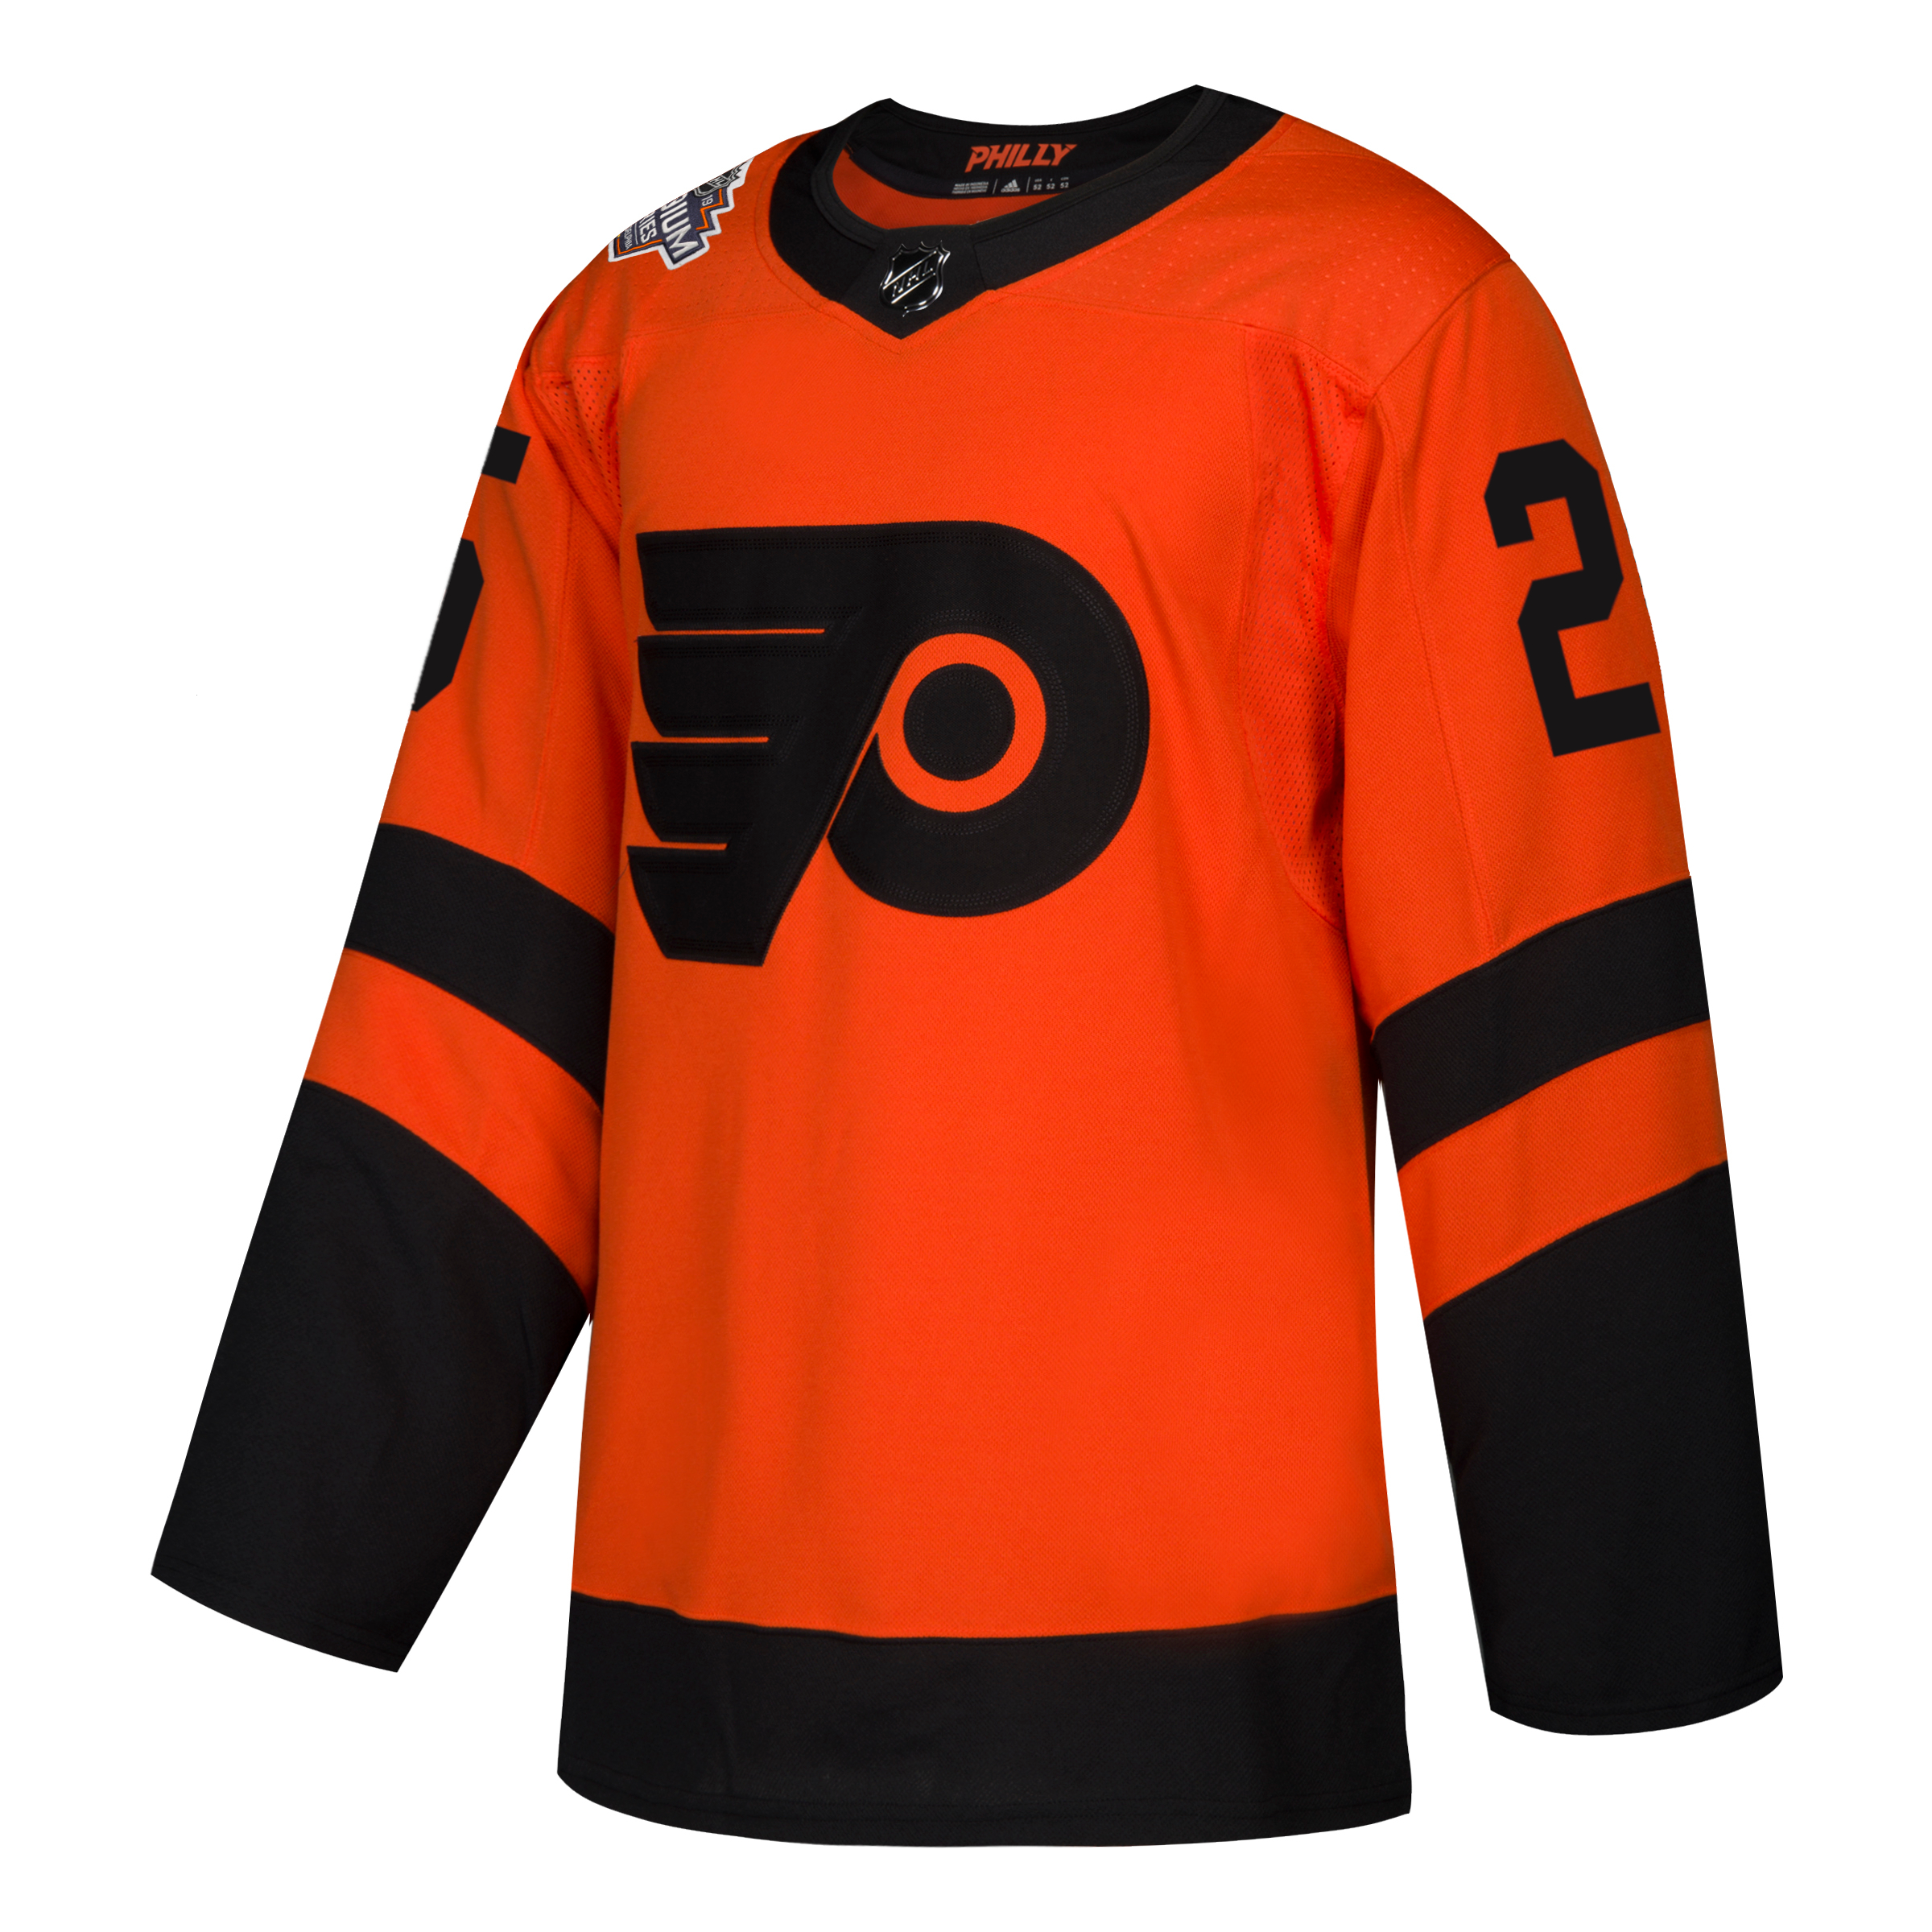 save off caf22 a3a4a Philadelphia Flyers Men's 2019 Stadium Series Gostisbehere Jersey by Adidas